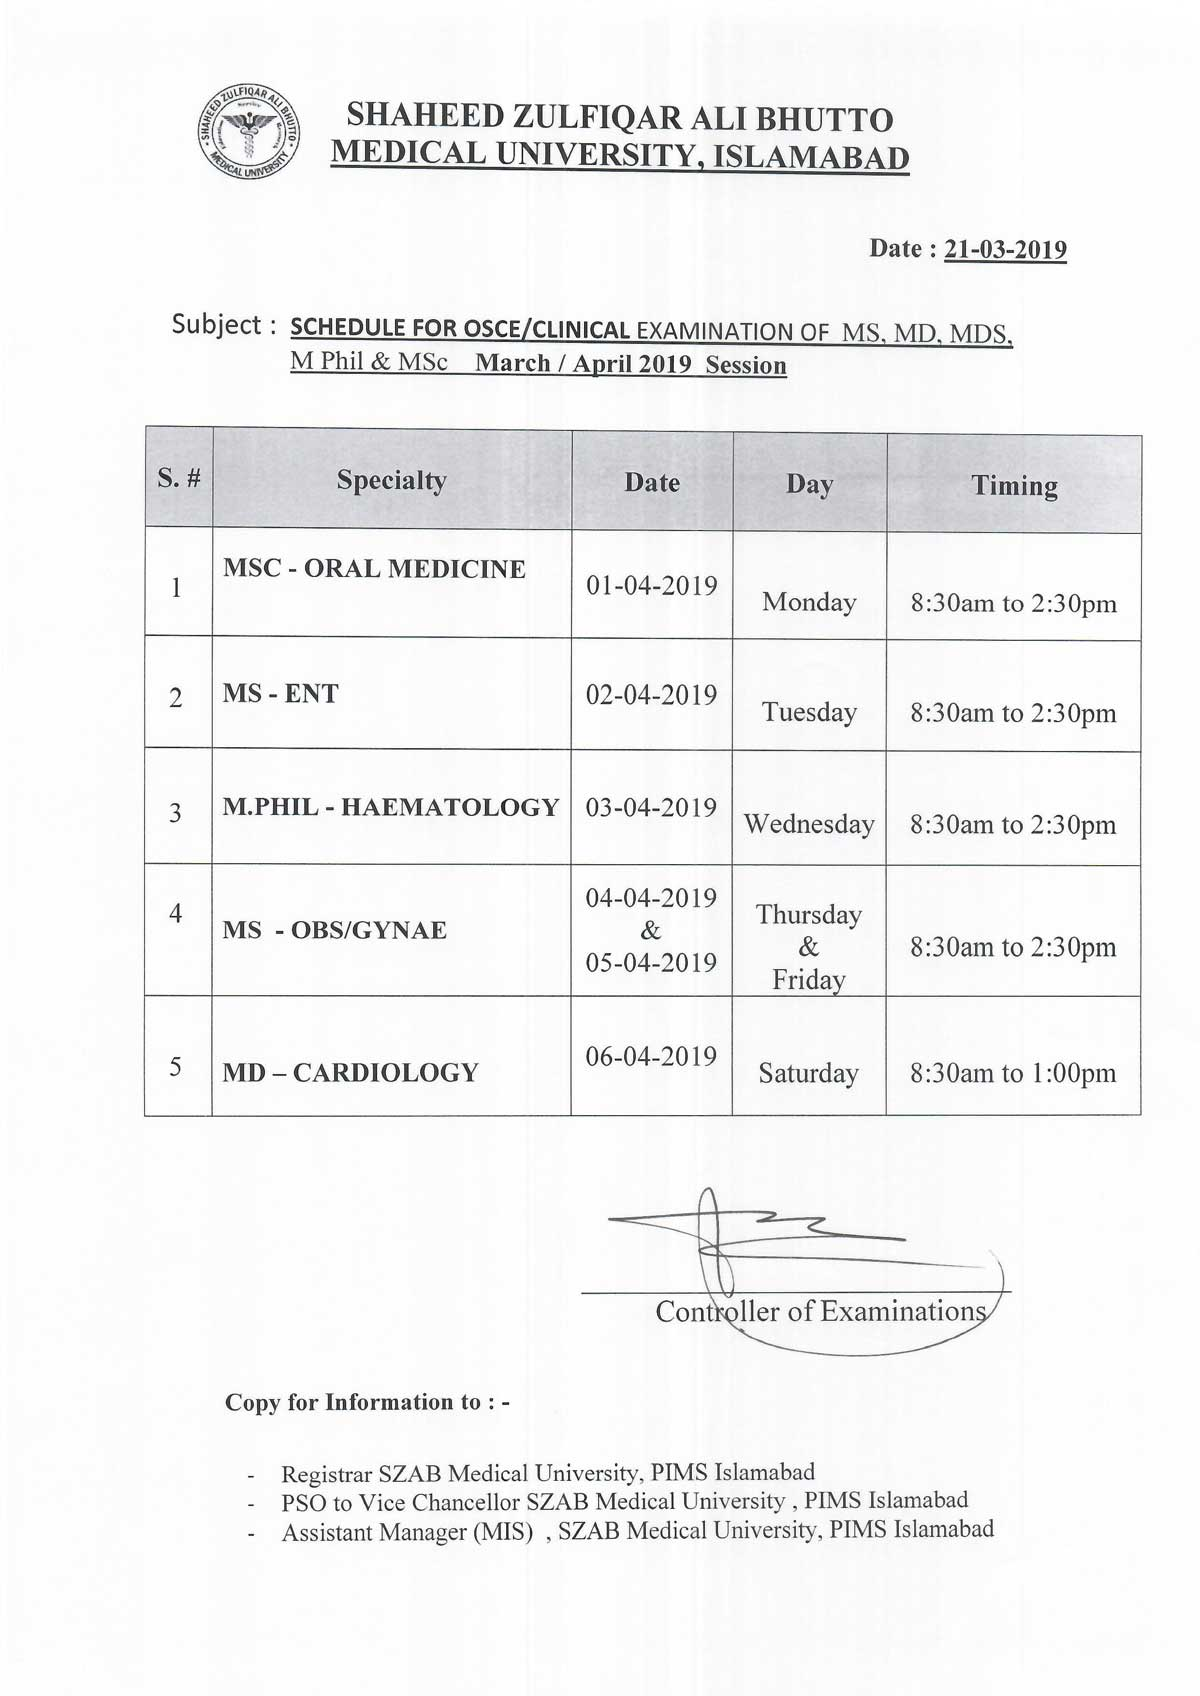 Schedule for OSCE/Clinical Examination of MS, MD, MDS, M PHIL & M SC